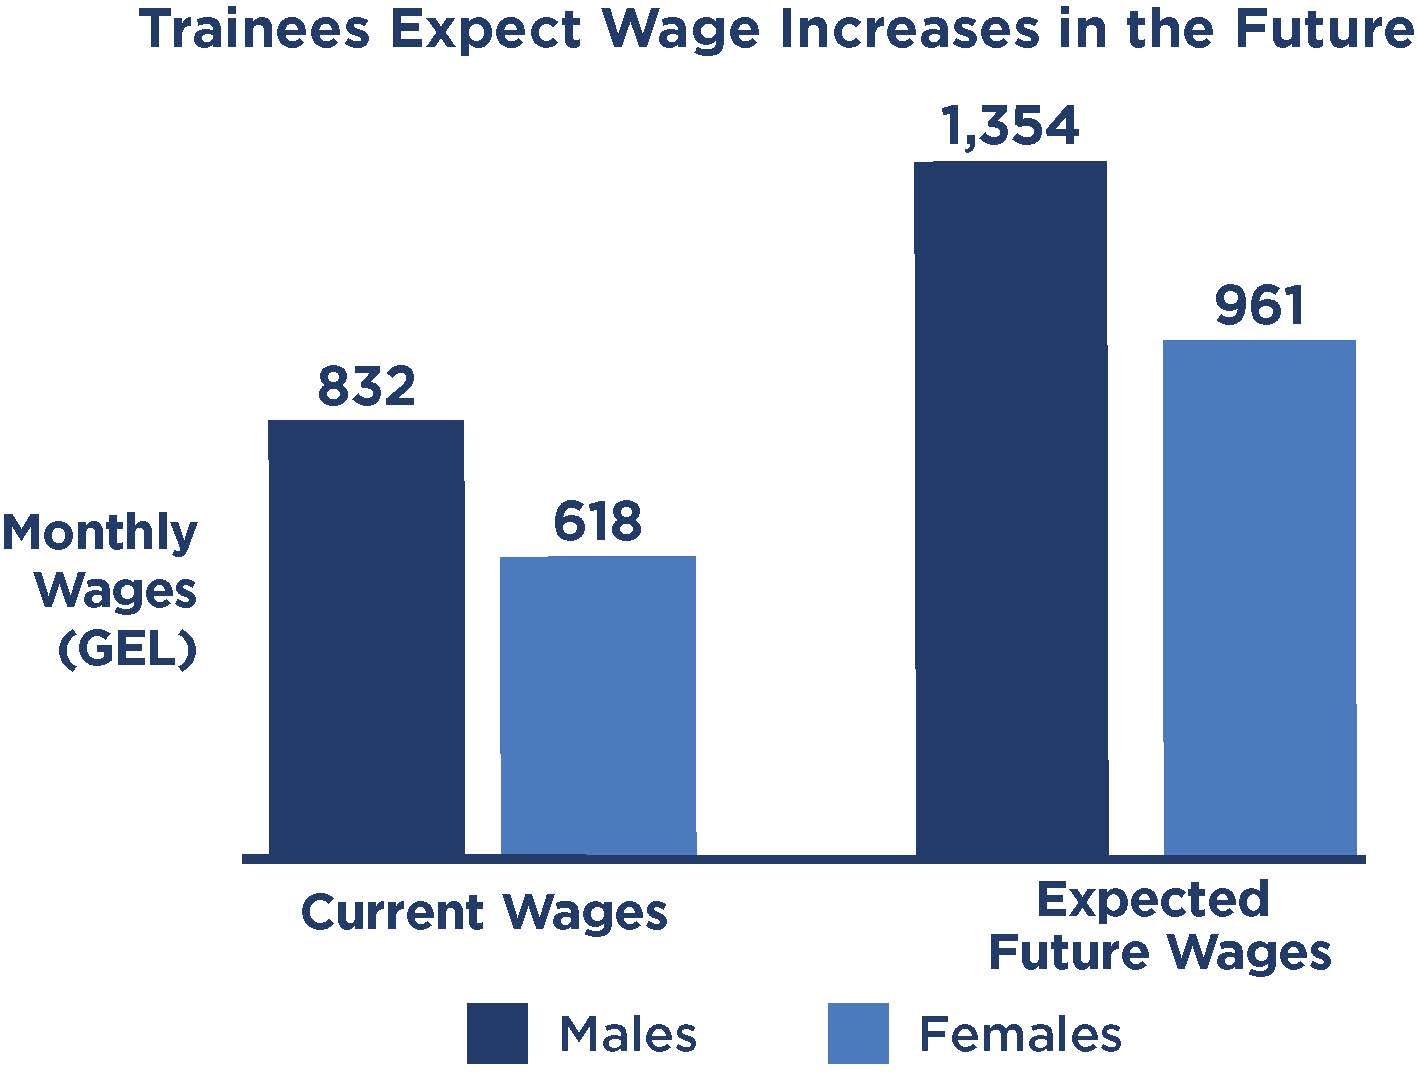 chart of trainees' expected future wage increase